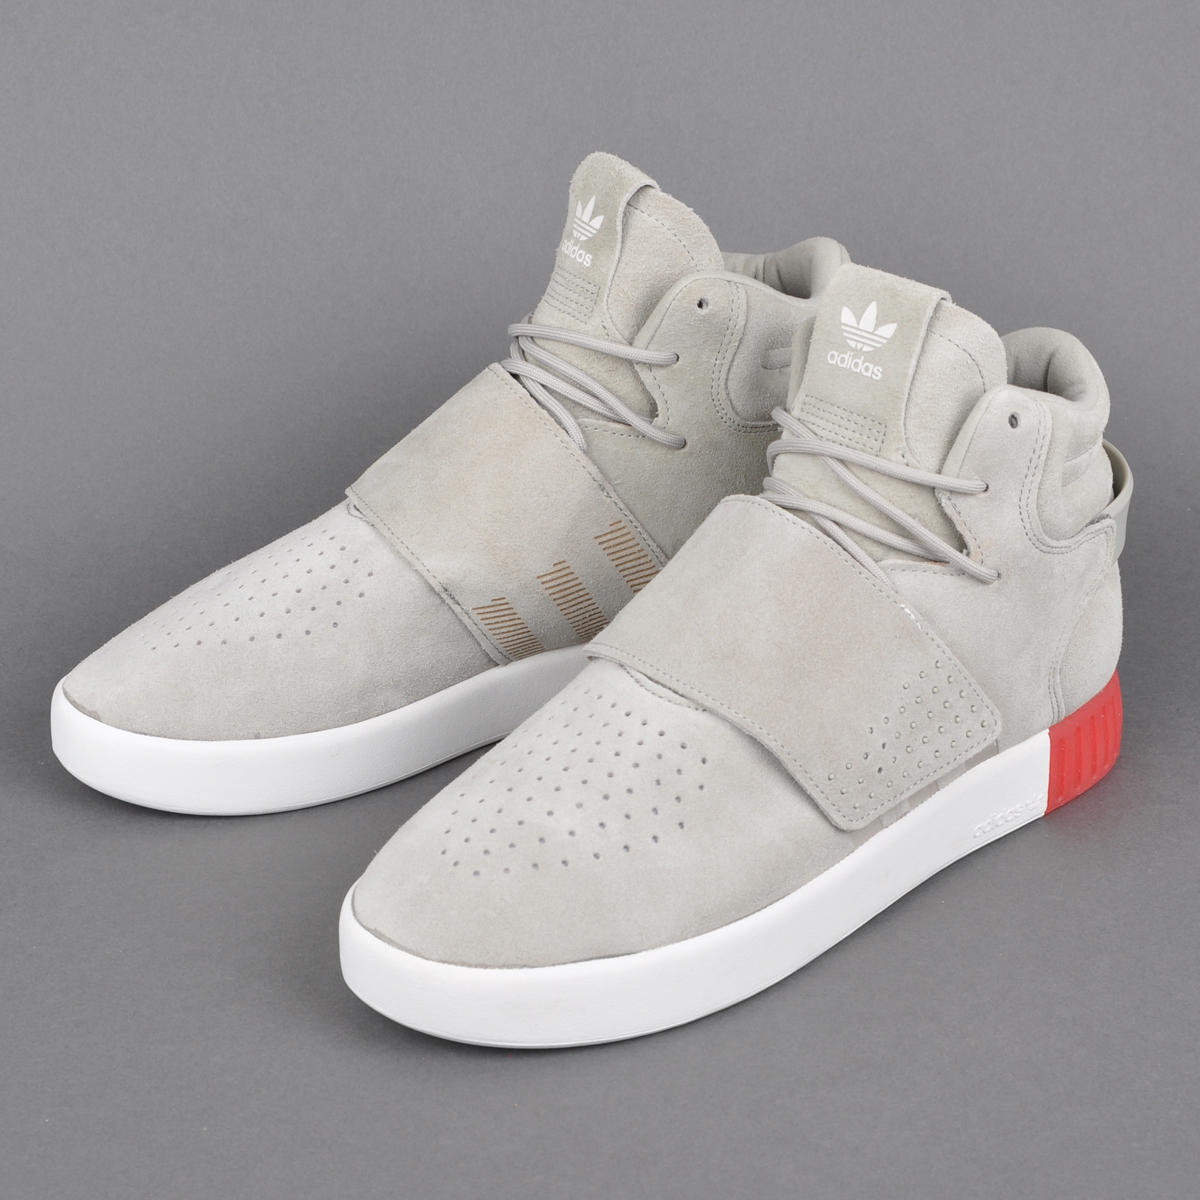 Adidas Originals Tubular Invader Strap Yeezy Black Icy Men Casual